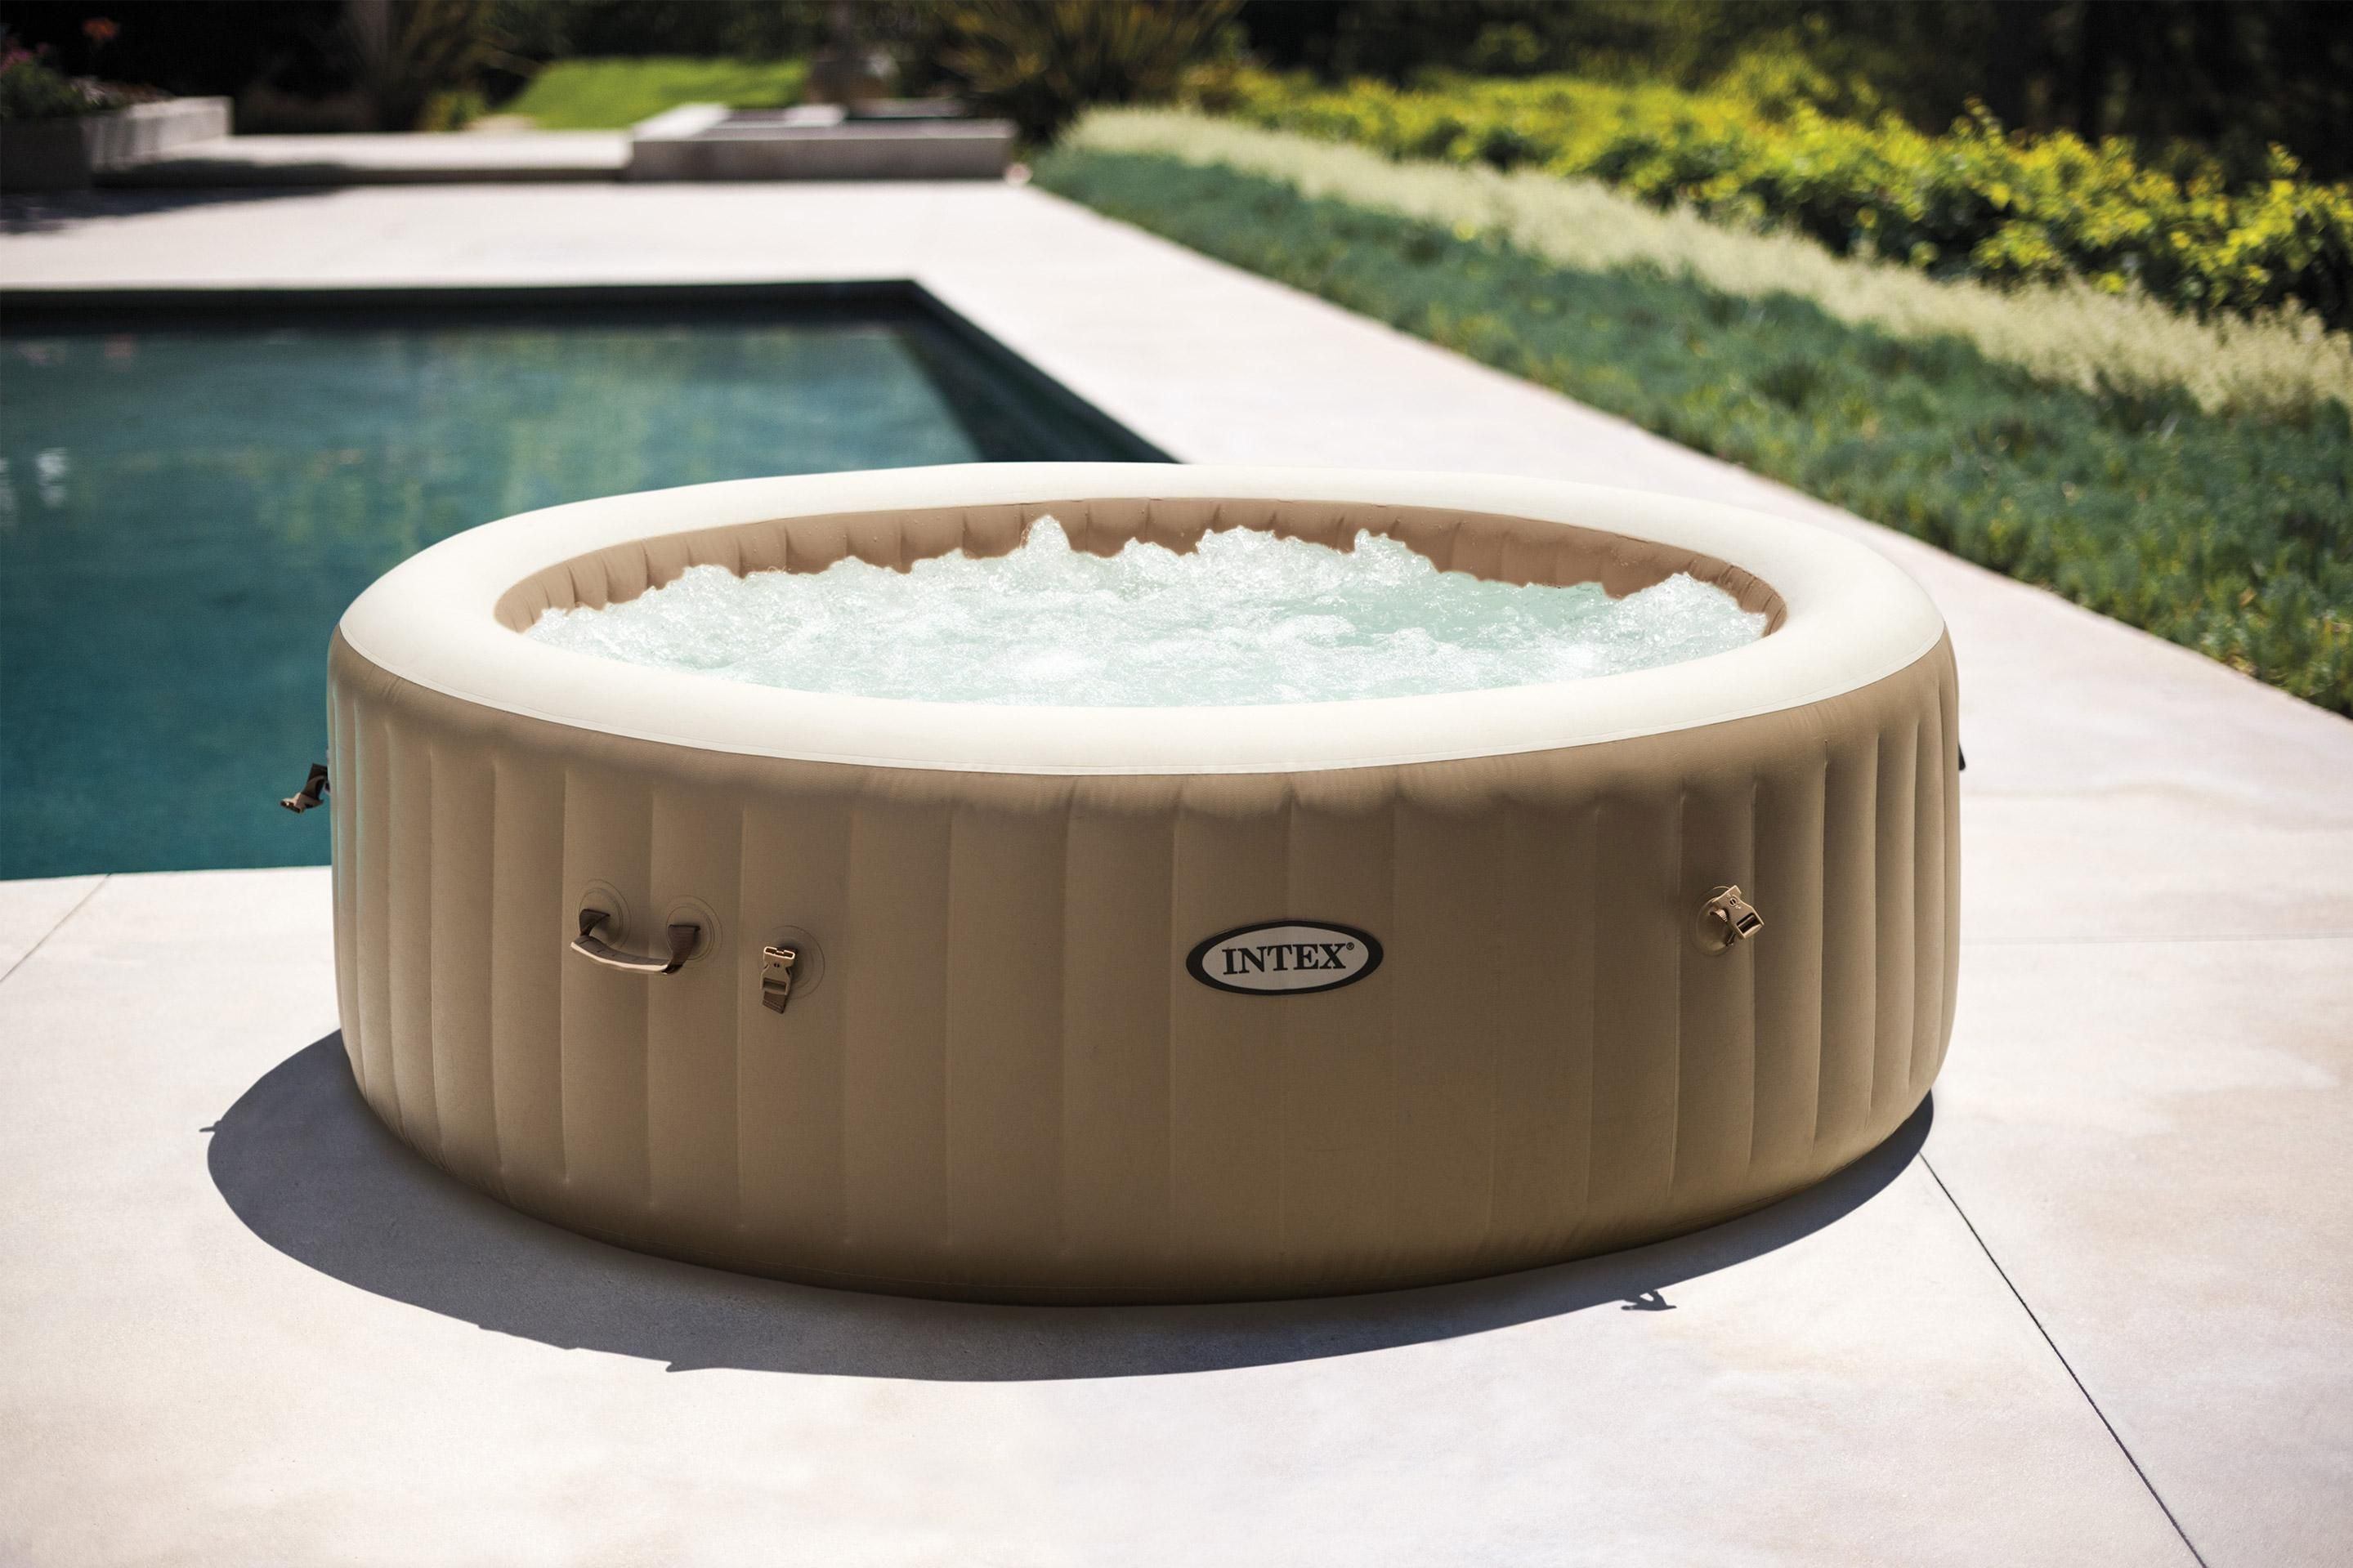 Spa Leroy Merlin Intex 6 Places spa gonflable intex sahara rond en 2020 | spa gonflable